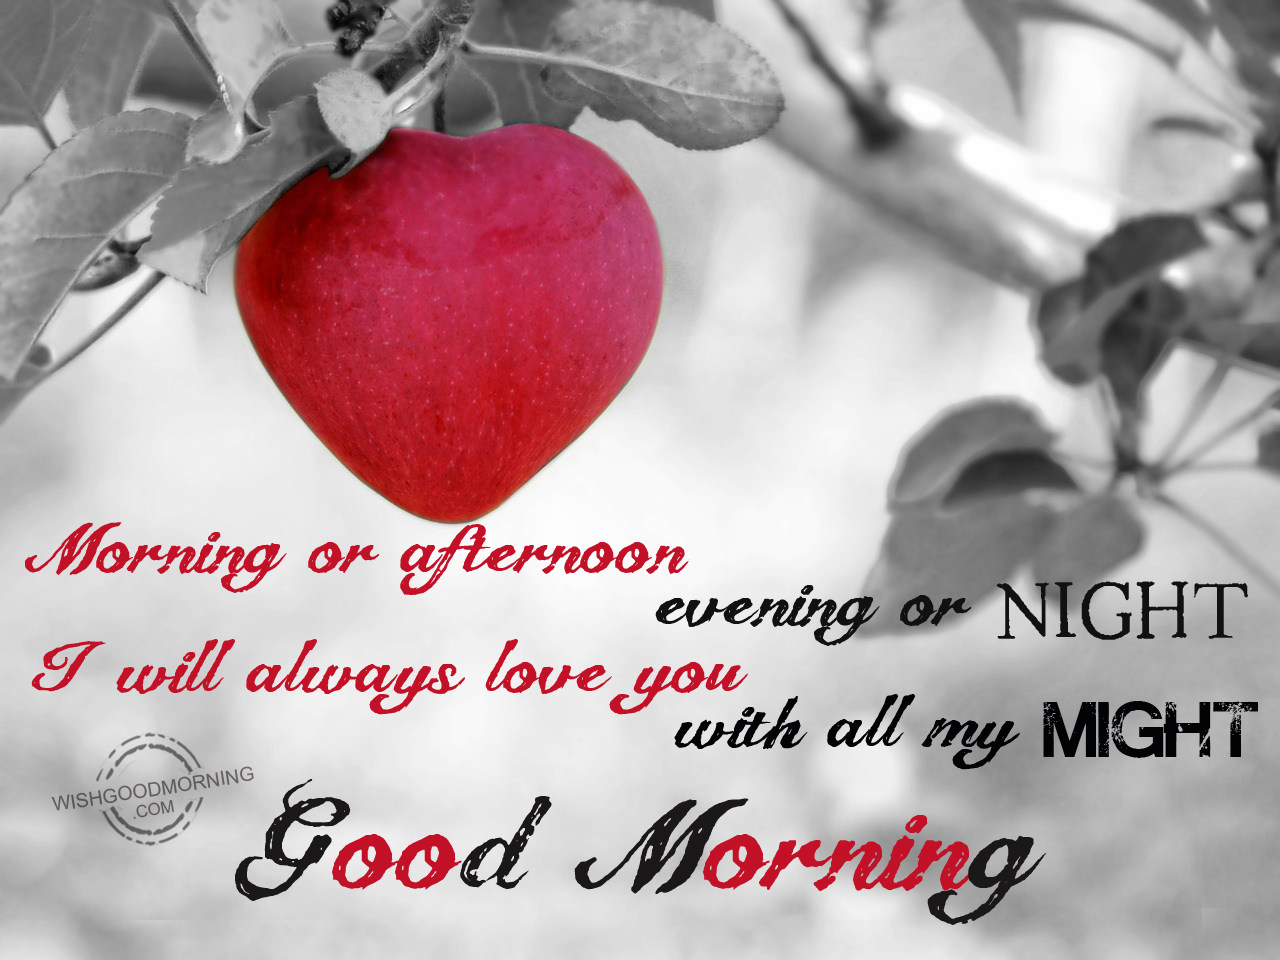 Good Morning Wishes For Wife Good Morning Pictures